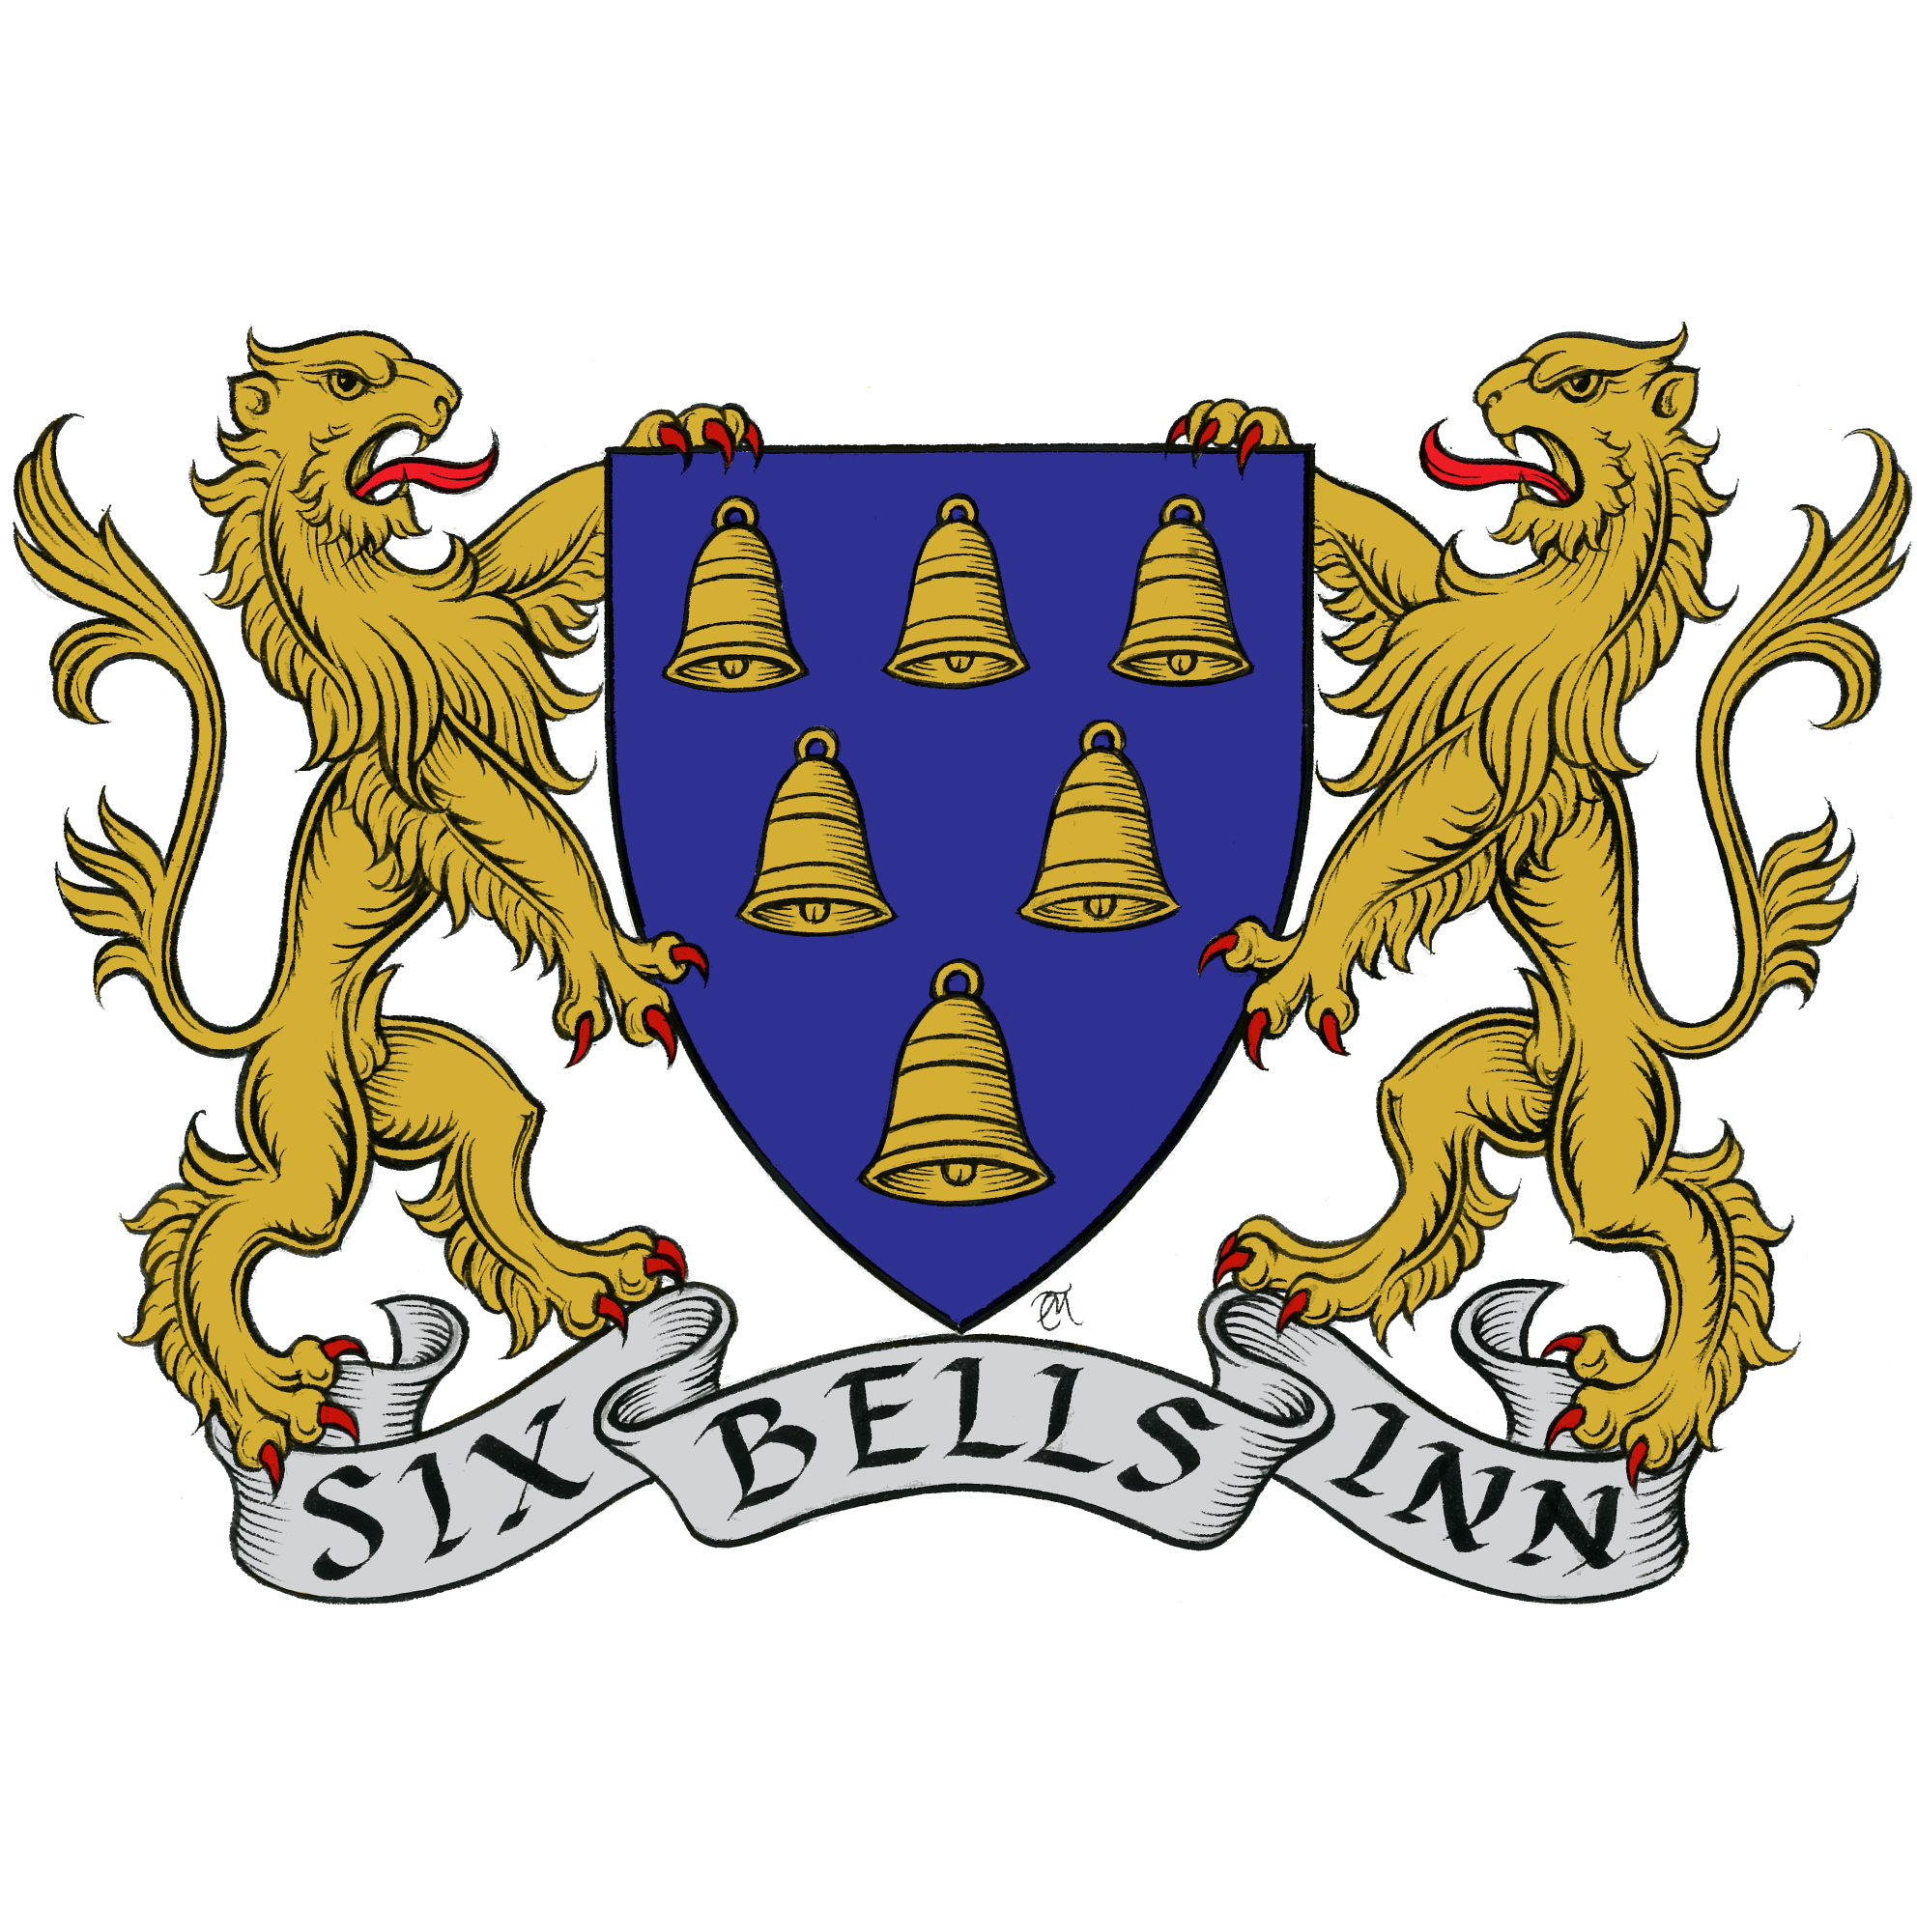 """Coat of arms with two lions and six bells inside shield crest. banner text, """"Six Bells Inn"""". Six Bells Inn Pub, Pub Beer Garden, Alcohol, Public House Colerne, Wiltshire"""